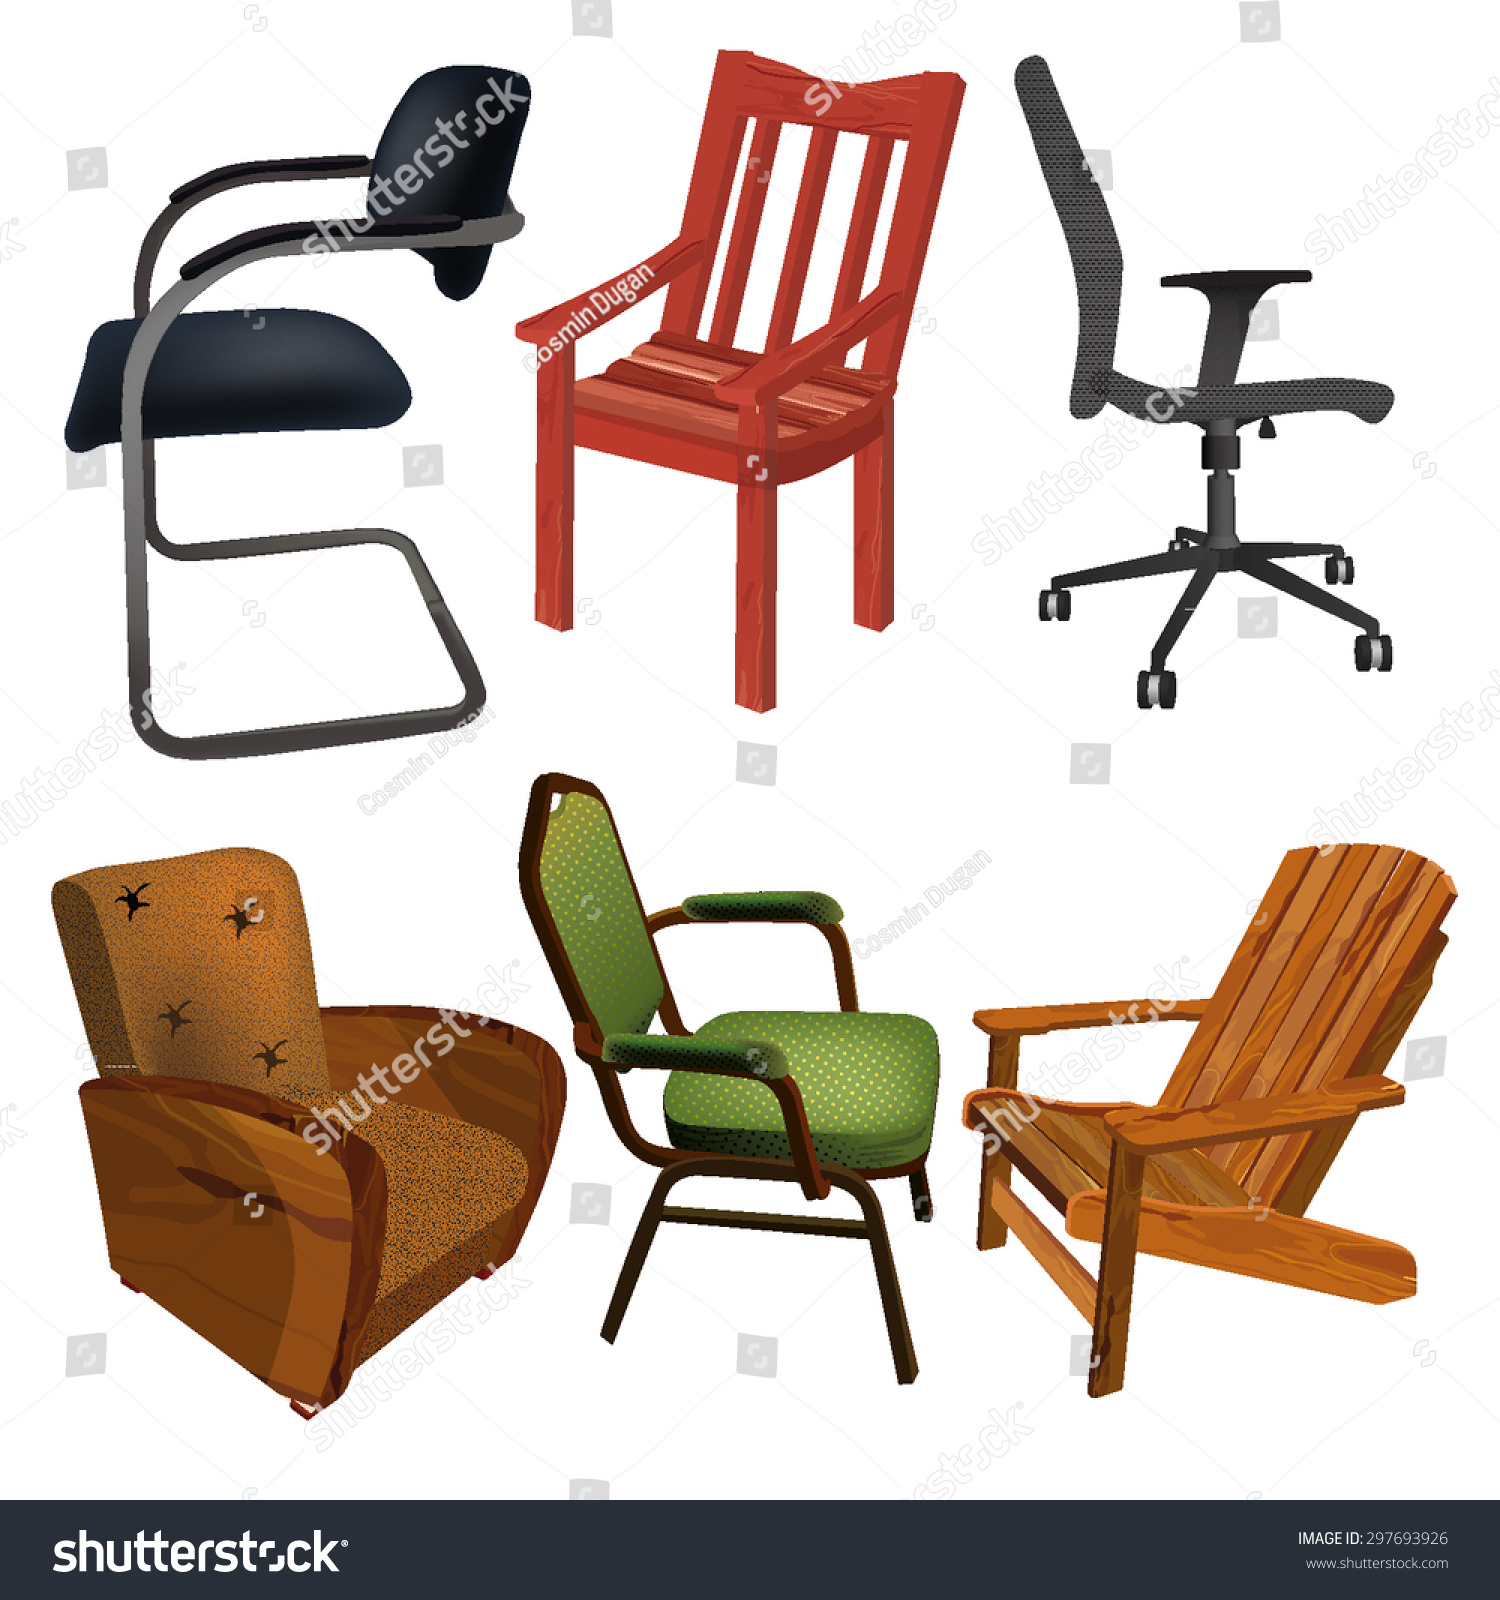 Different Chairs Stock Vector 297693926 - Shutterstock